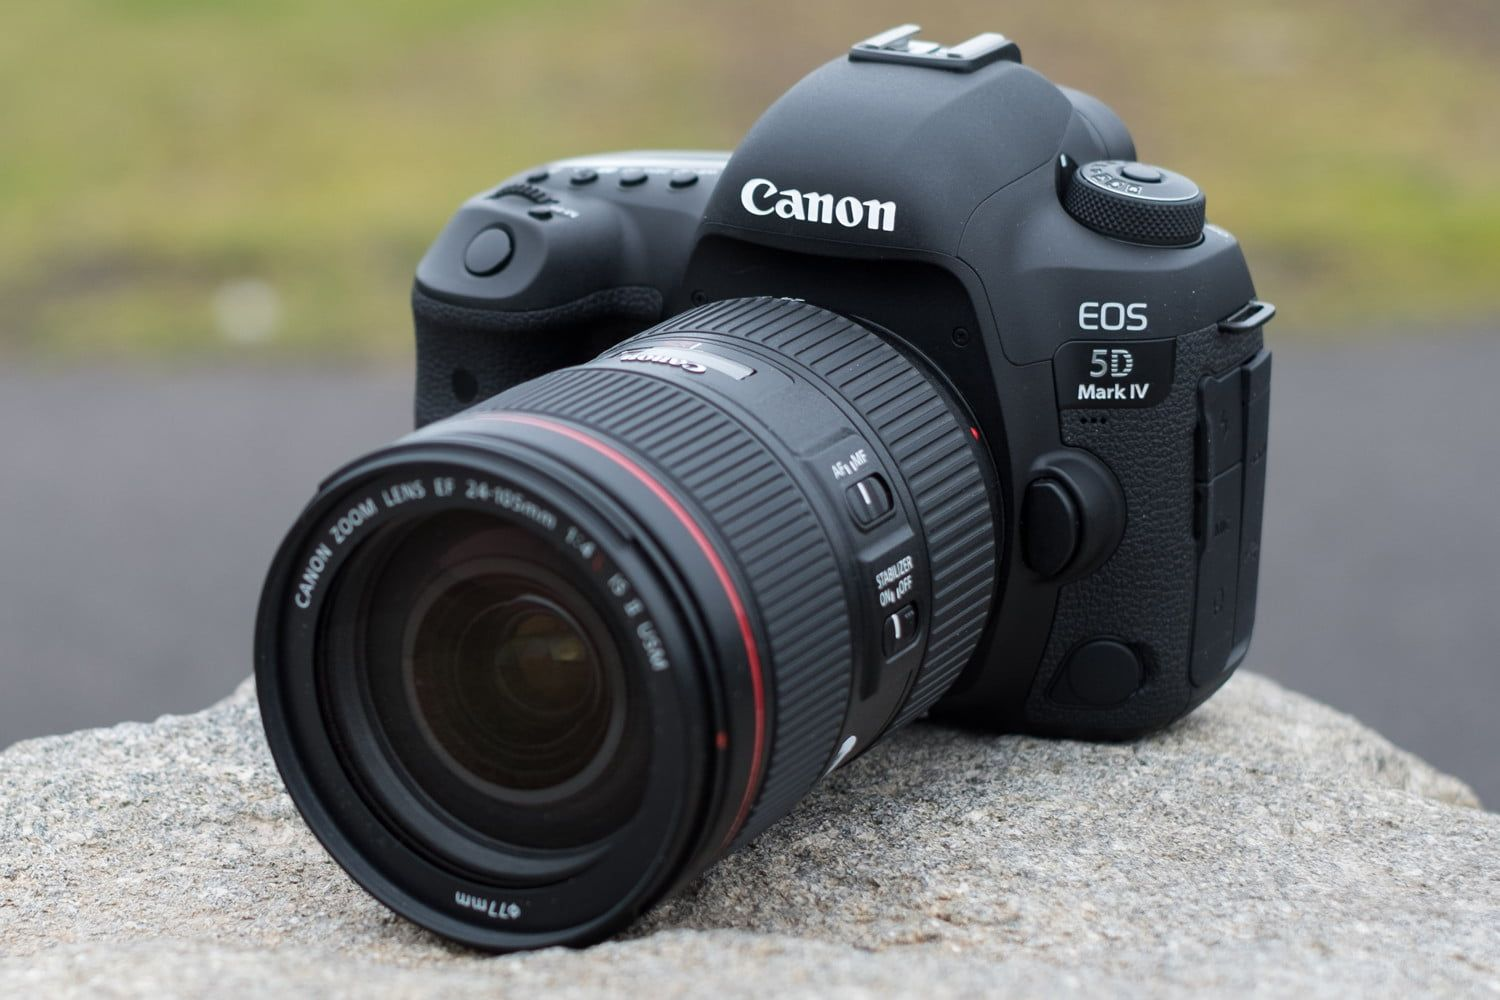 Canon Eos 5d Mark Iv Review In 2020 Canon Camera Best Professional Camera Best Dslr